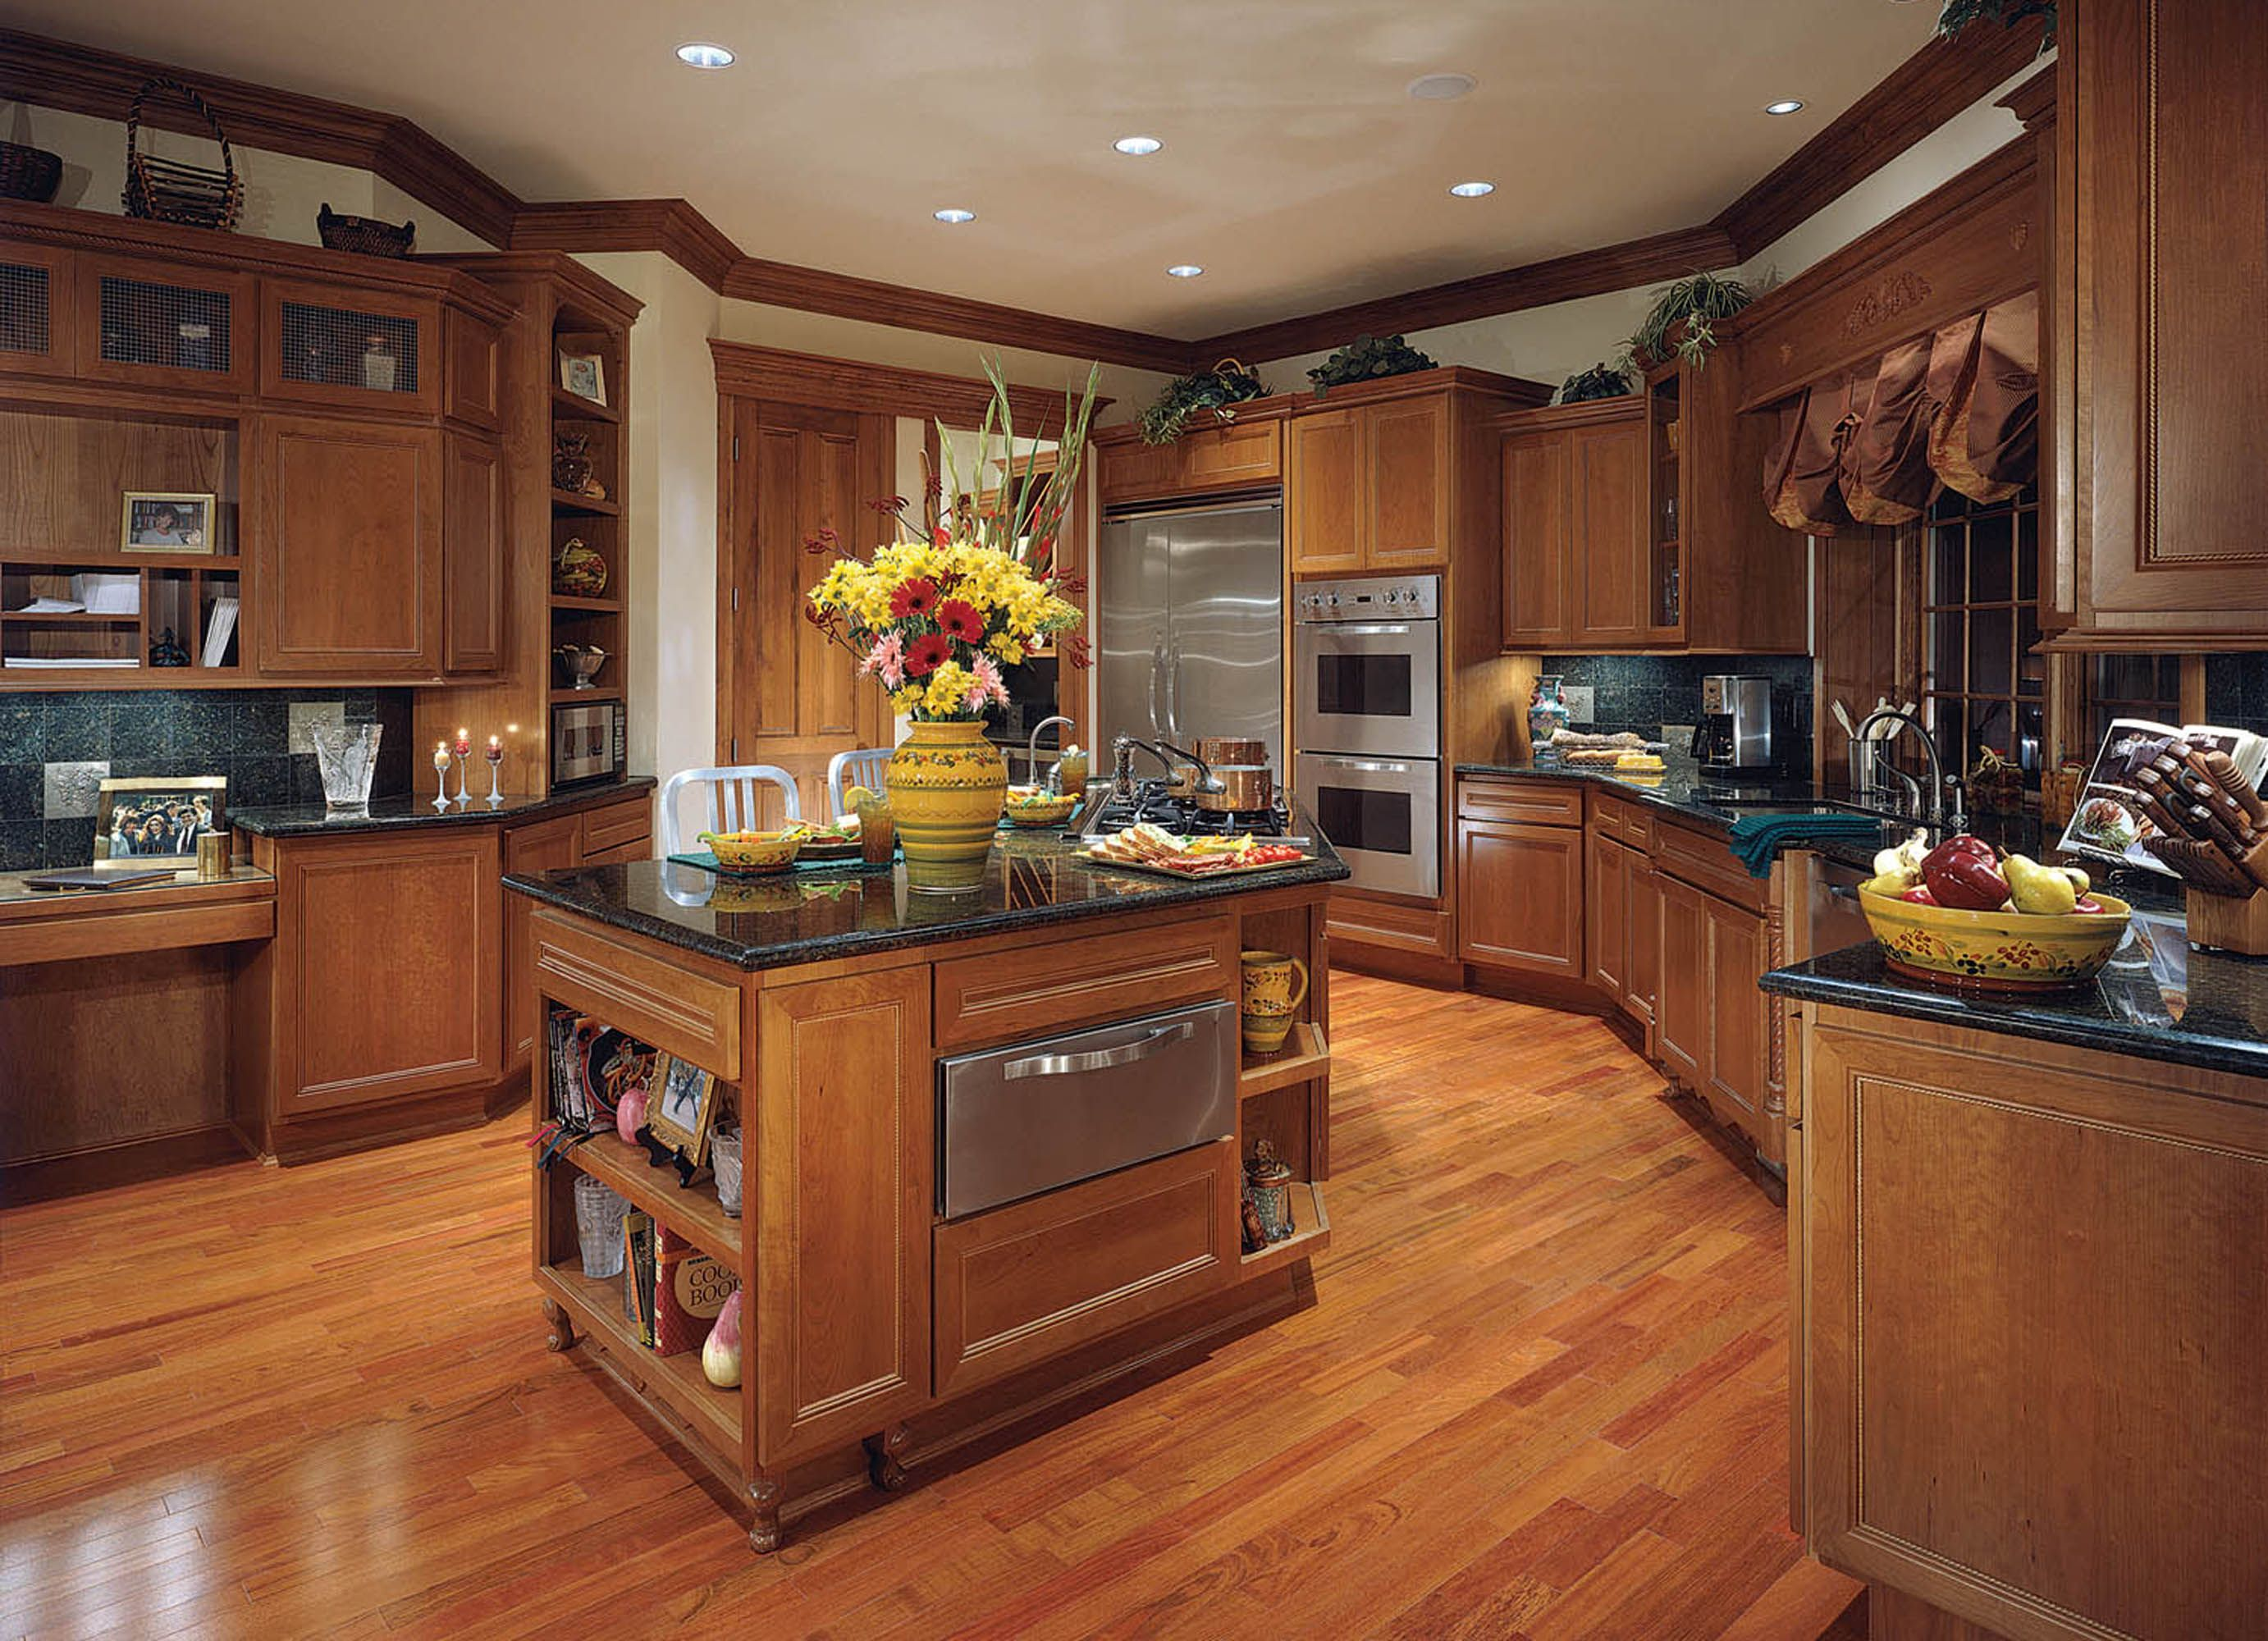 Using Custom Kitchen Cabinets In Planning A Kitchen In 2020 Traditional Kitchen Design Custom Kitchen Cabinets Design Custom Kitchens Design